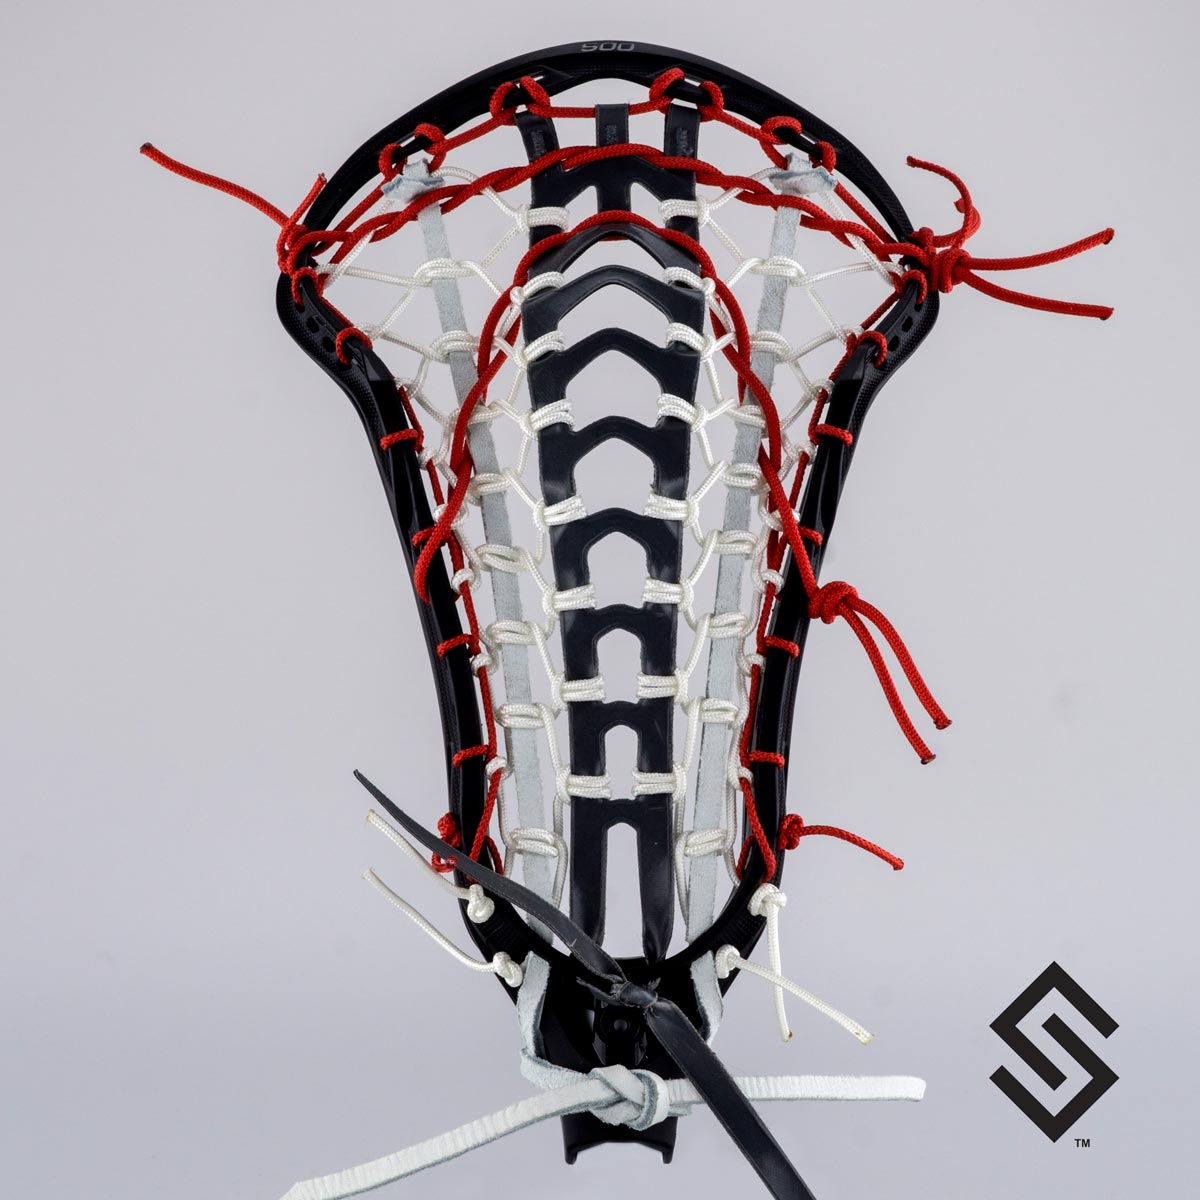 STYLIN STRINGS WOMEN'S STX LAUNCH POCKET NCAA - USL - FIL  LEGAL